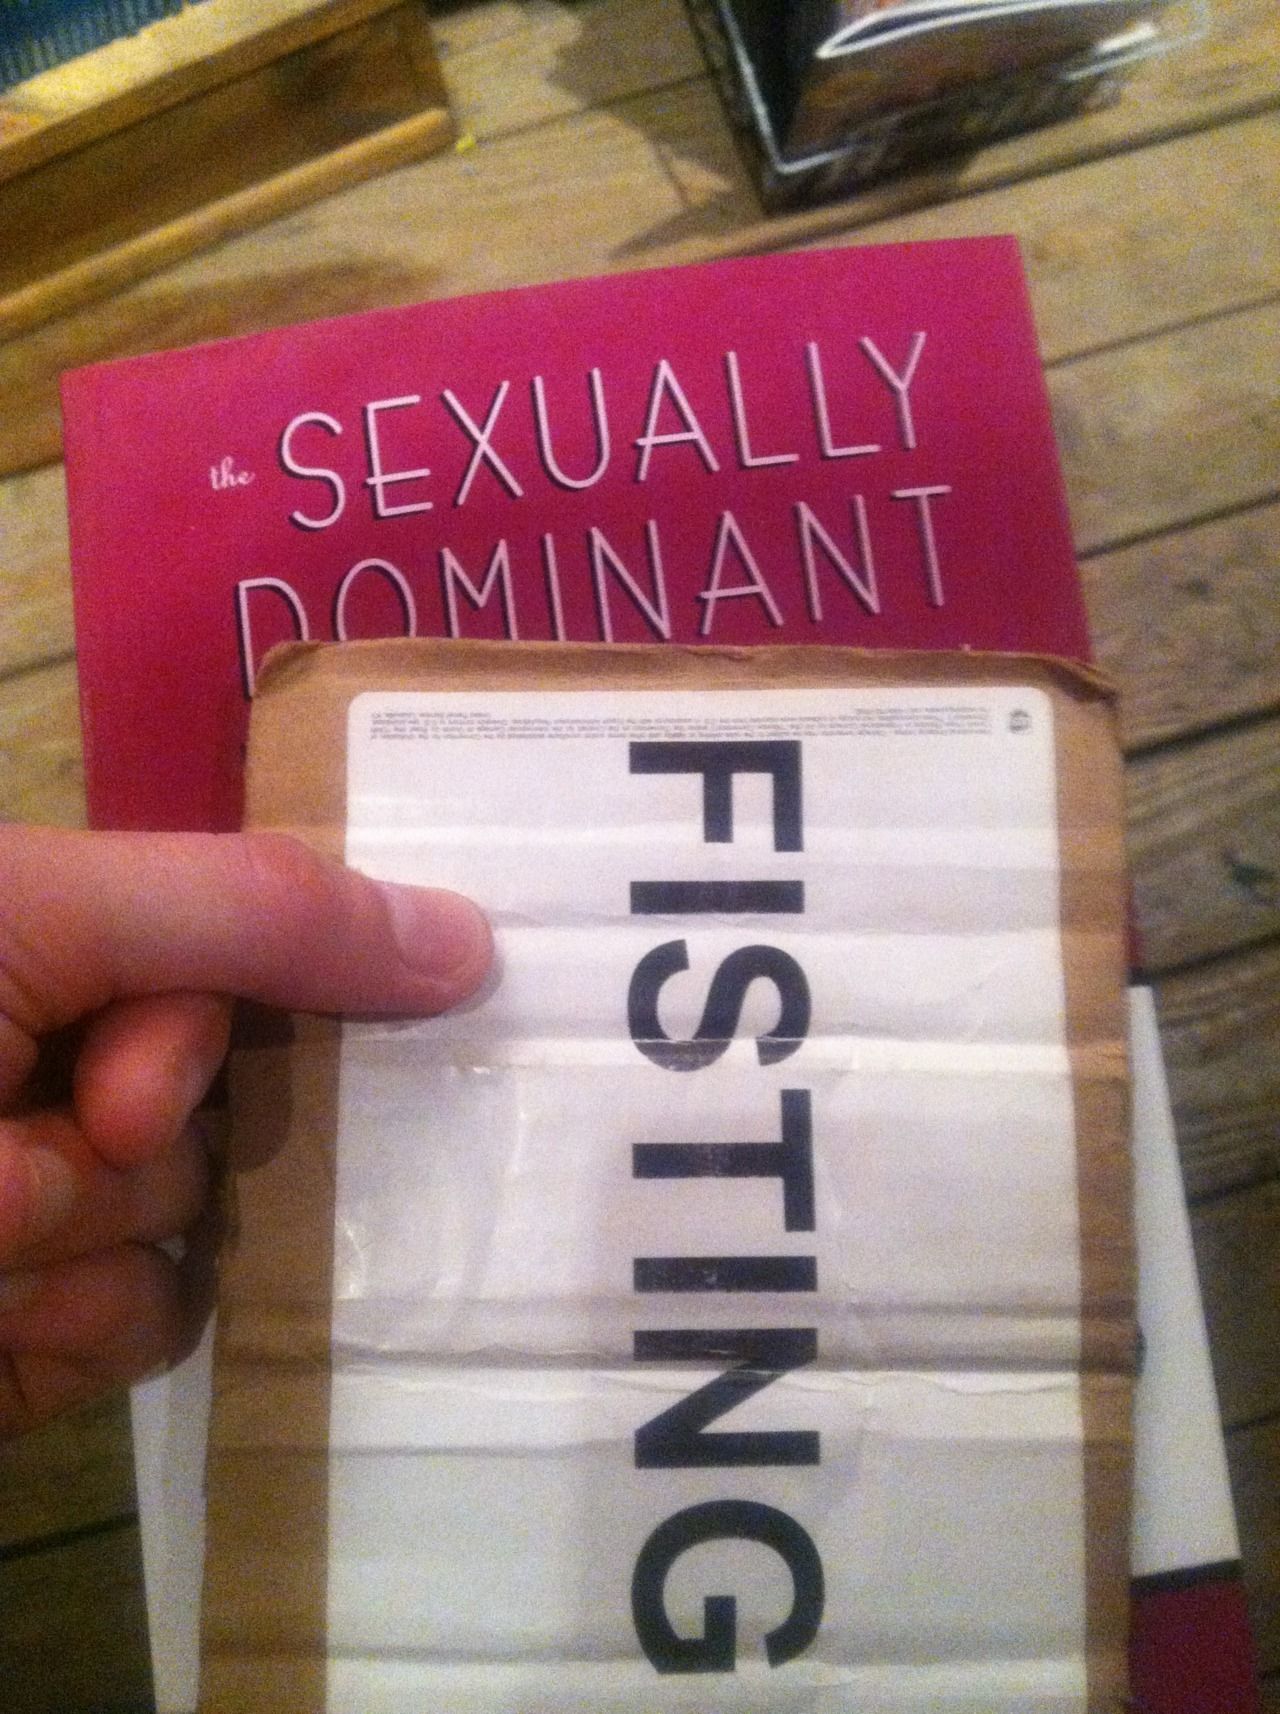 I got the LGS a book, The Sexually Dominant Woman: A Workbook for Nervous Beginners  And, inspired by the token they gave me at the bag check, I think I'll fist her if she can't manage to learn something from it…